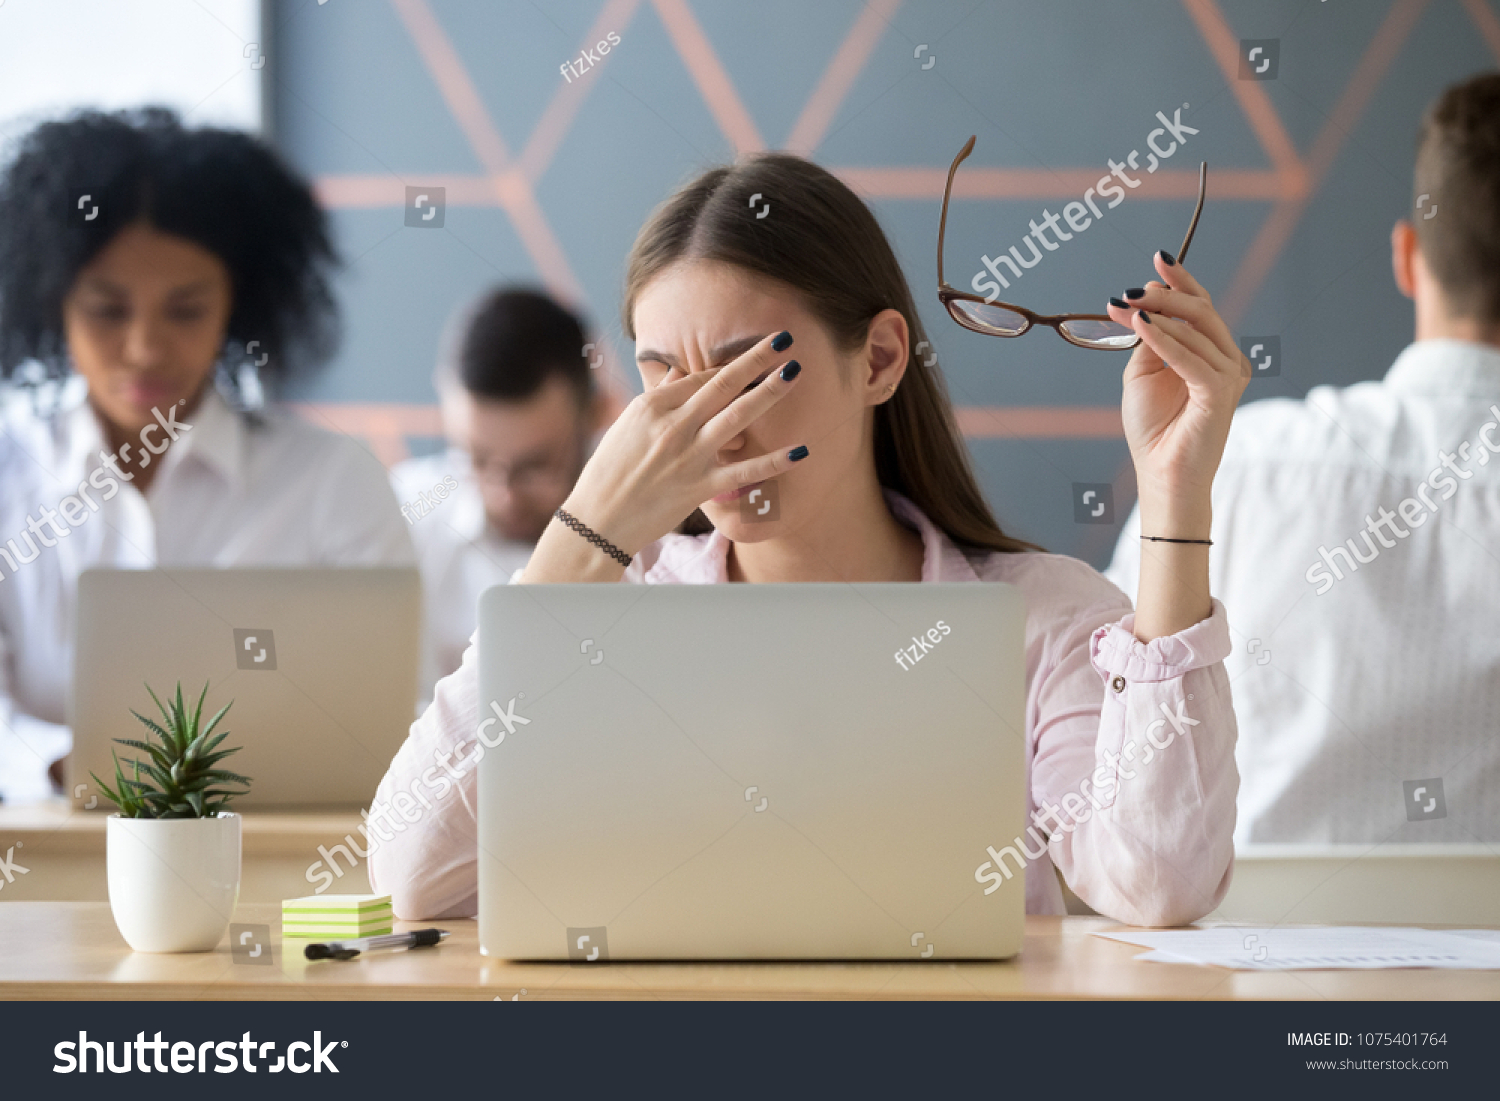 Young woman taking off glasses tired of computer work, exhausted student or employee suffering from eye strain tension or computer blurry vision problem after long laptop use, eyes fatigue concept